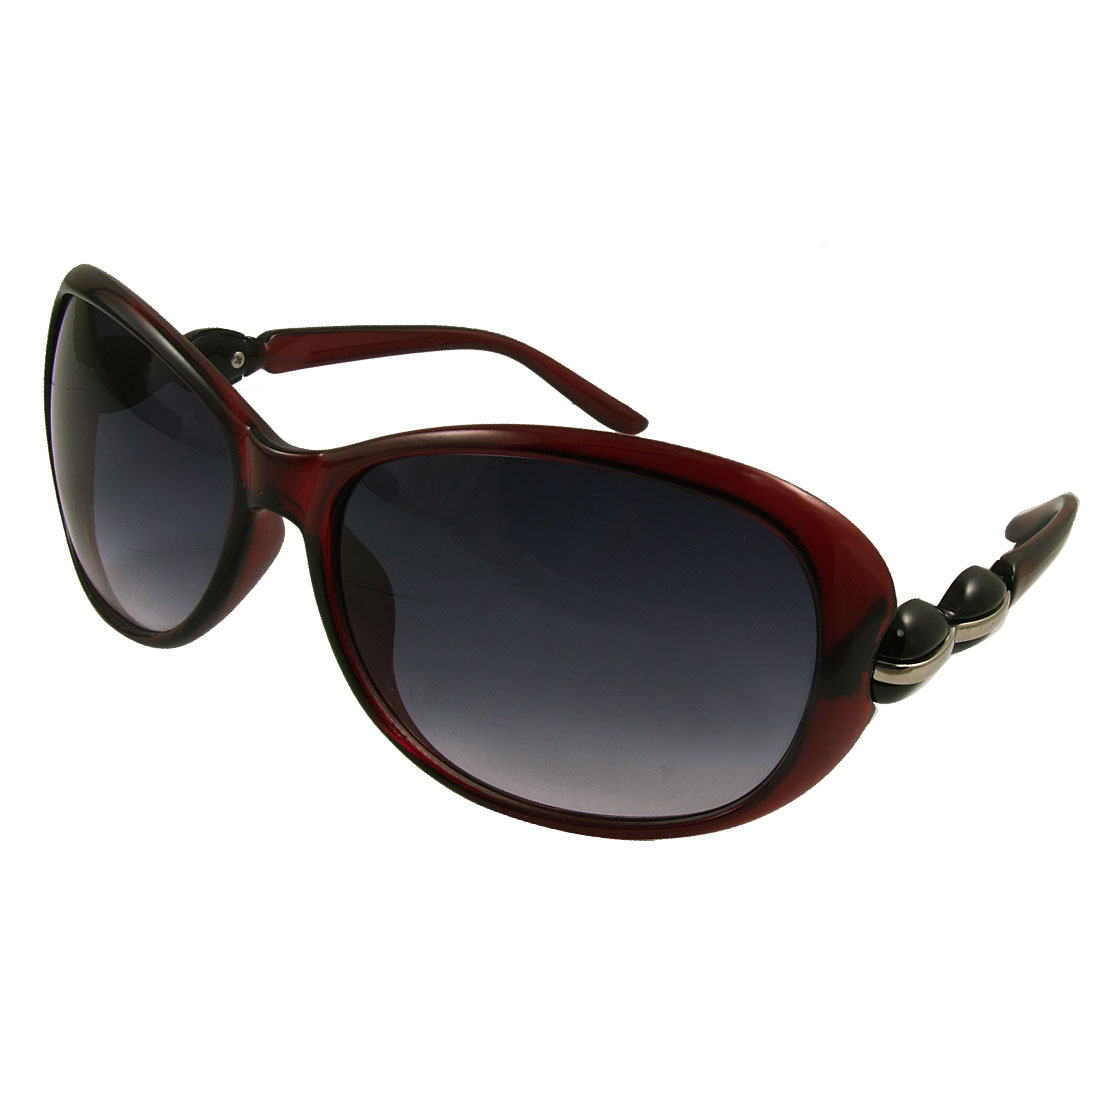 Woman Plastic Arm Burgundy Full Frame Sunglasses Eyewear